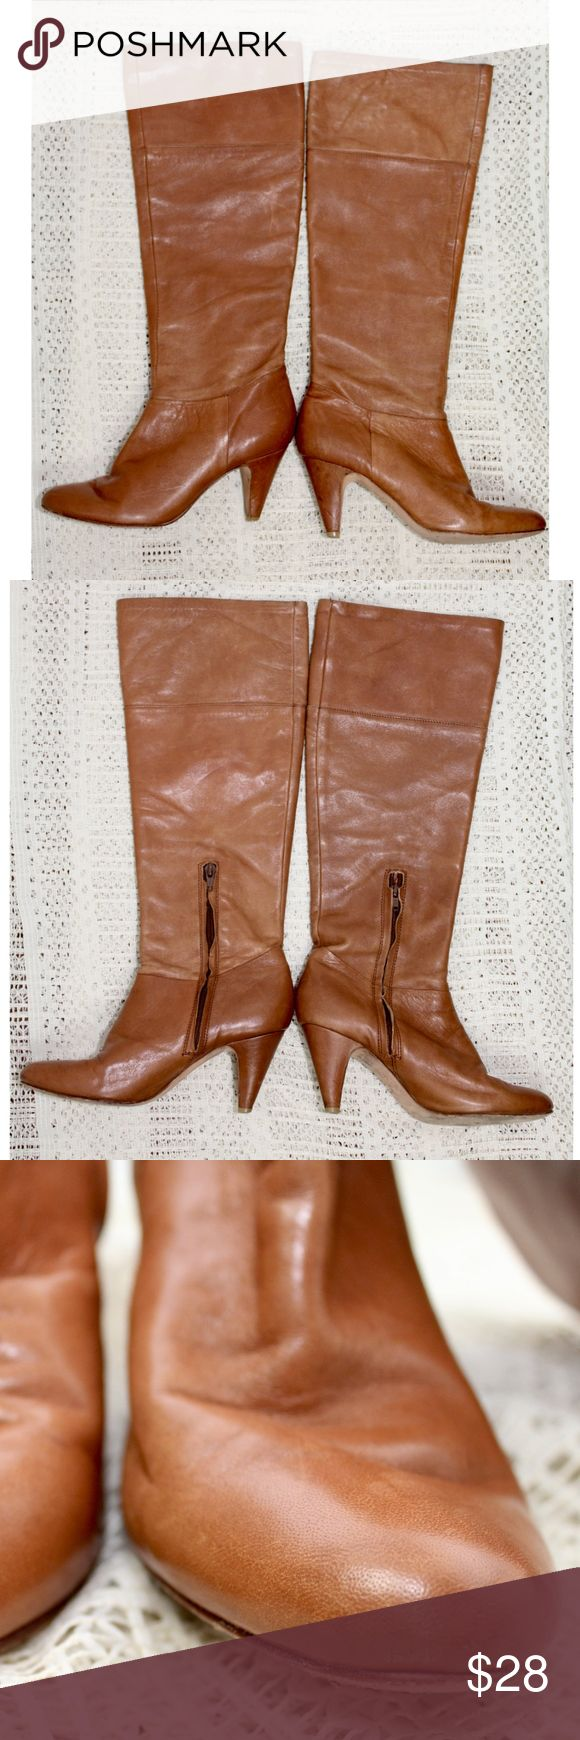 "Cynthia Vincent Anthropologie Leather Tan Boots Cynthia Vincent Anthropologie Leather Tan Boots, Size 6.5, Soft leather, Half side zip-leather is starting to roll on the zipper, Rounded toe, 3"" heels-does have some knicks from normal wear, Pre owned good condition-could use some shoe polish. See pictures and ask questions before buying! Anthropologie Shoes Heeled Boots"